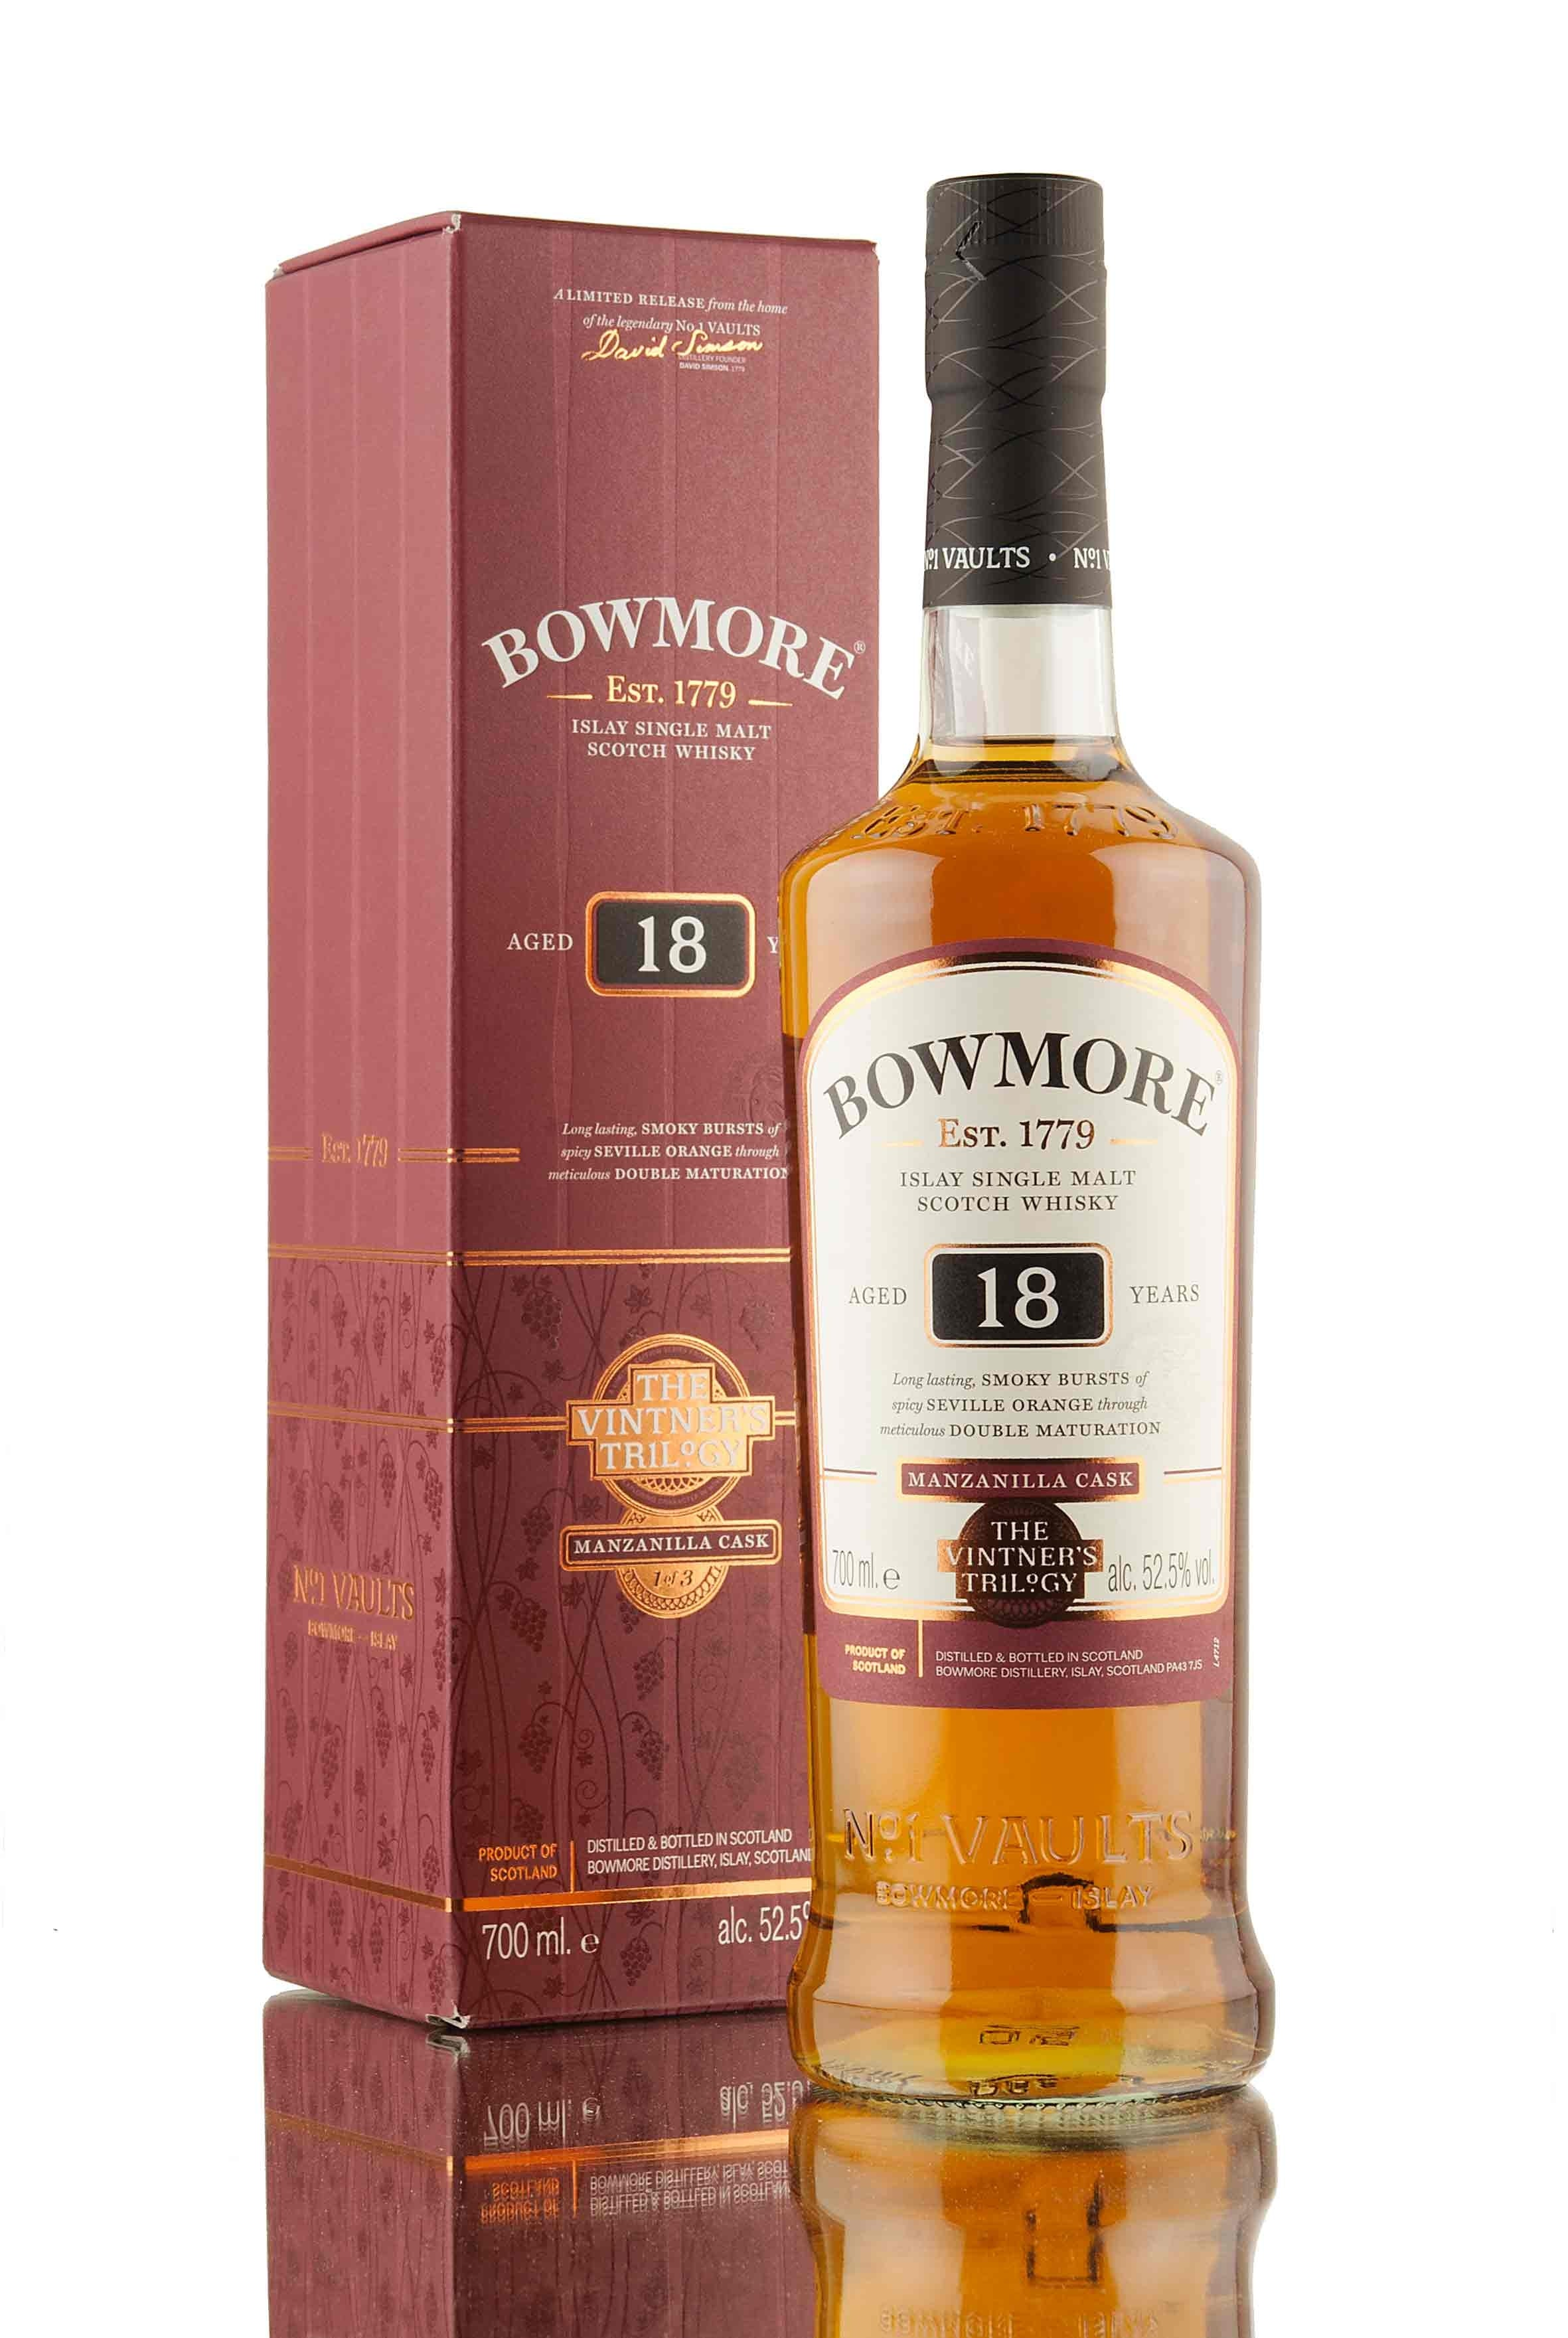 Bowmore 18 Year Old | The Vinter's Trilogy